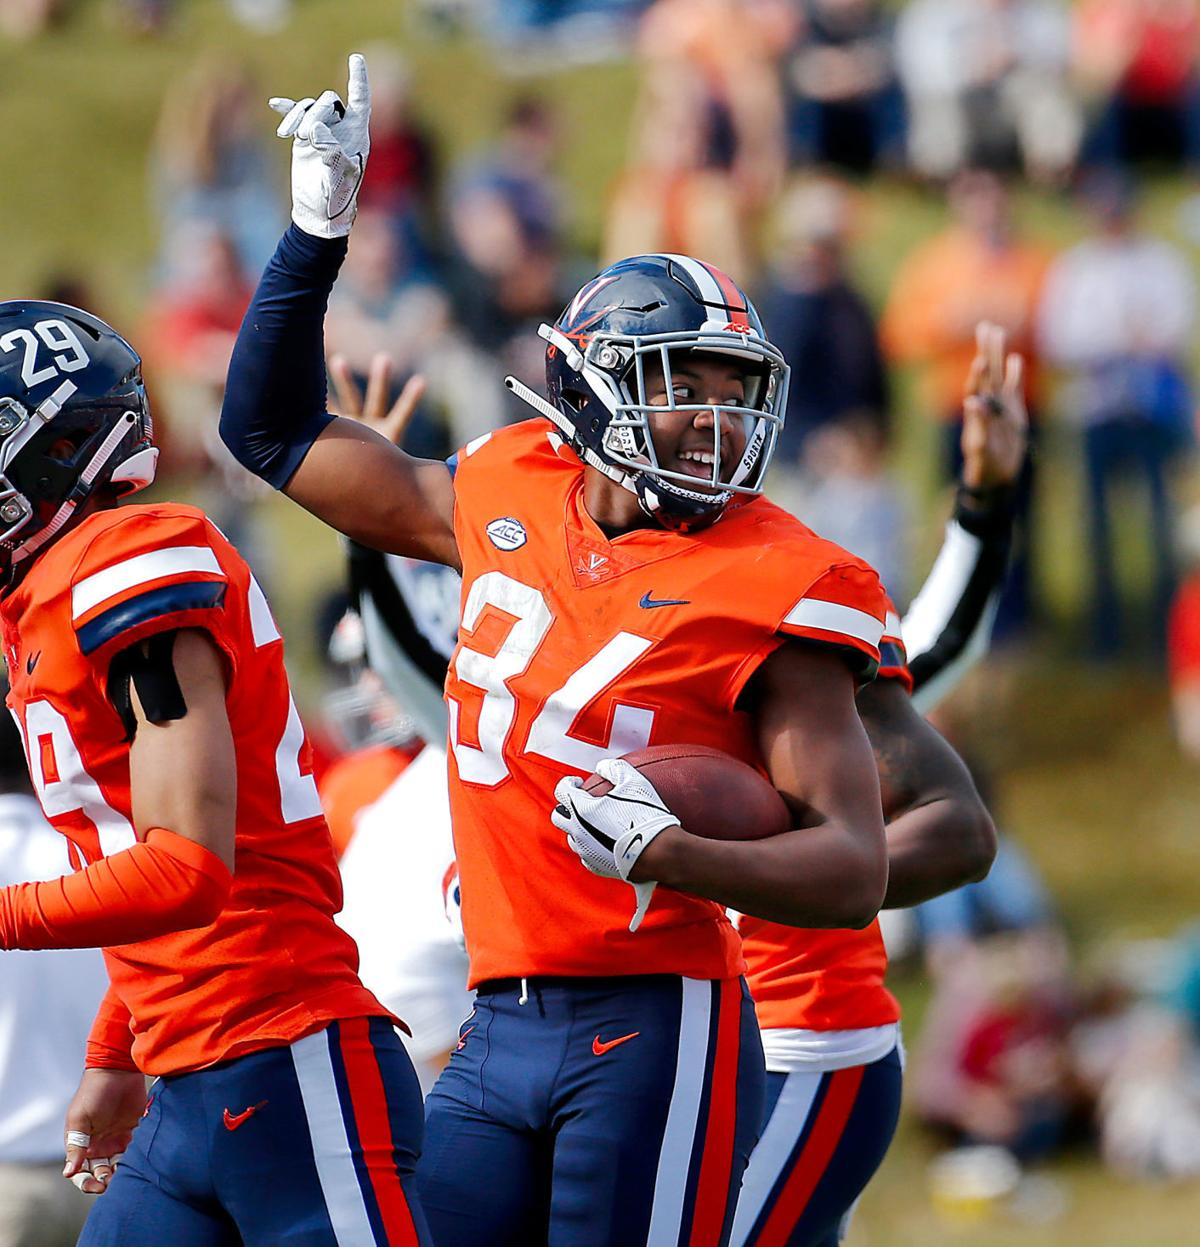 Woody Winning Has Become The New Normal For Uva Football College